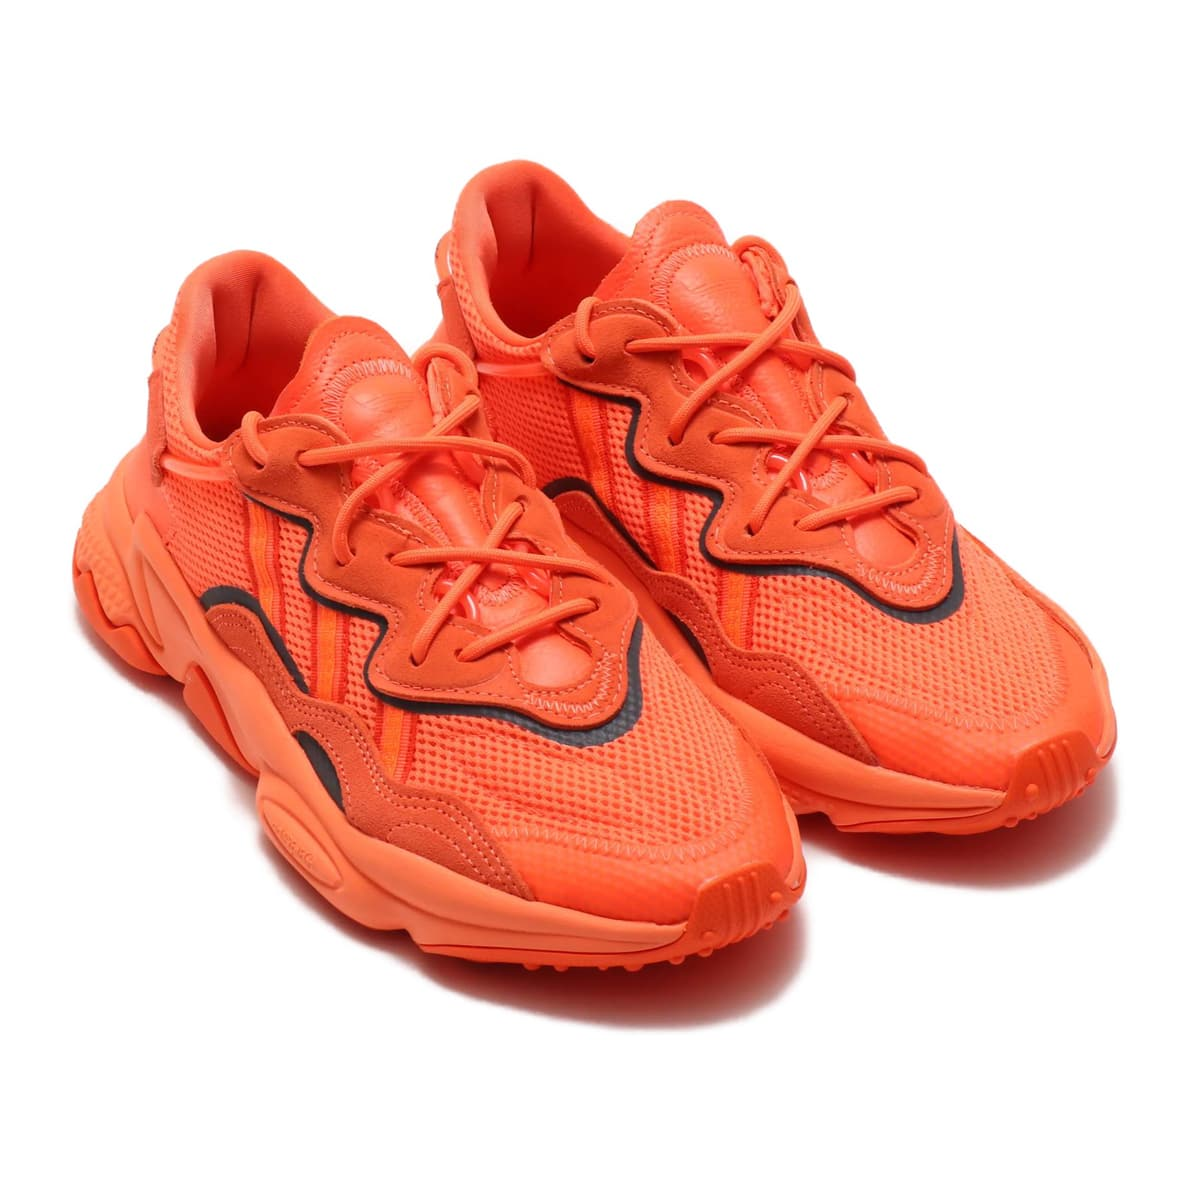 adidas OZWEEGO HI-RES CORAL/SEMI CORAL/SOLAR ORANGE 19FW-S_photo_large